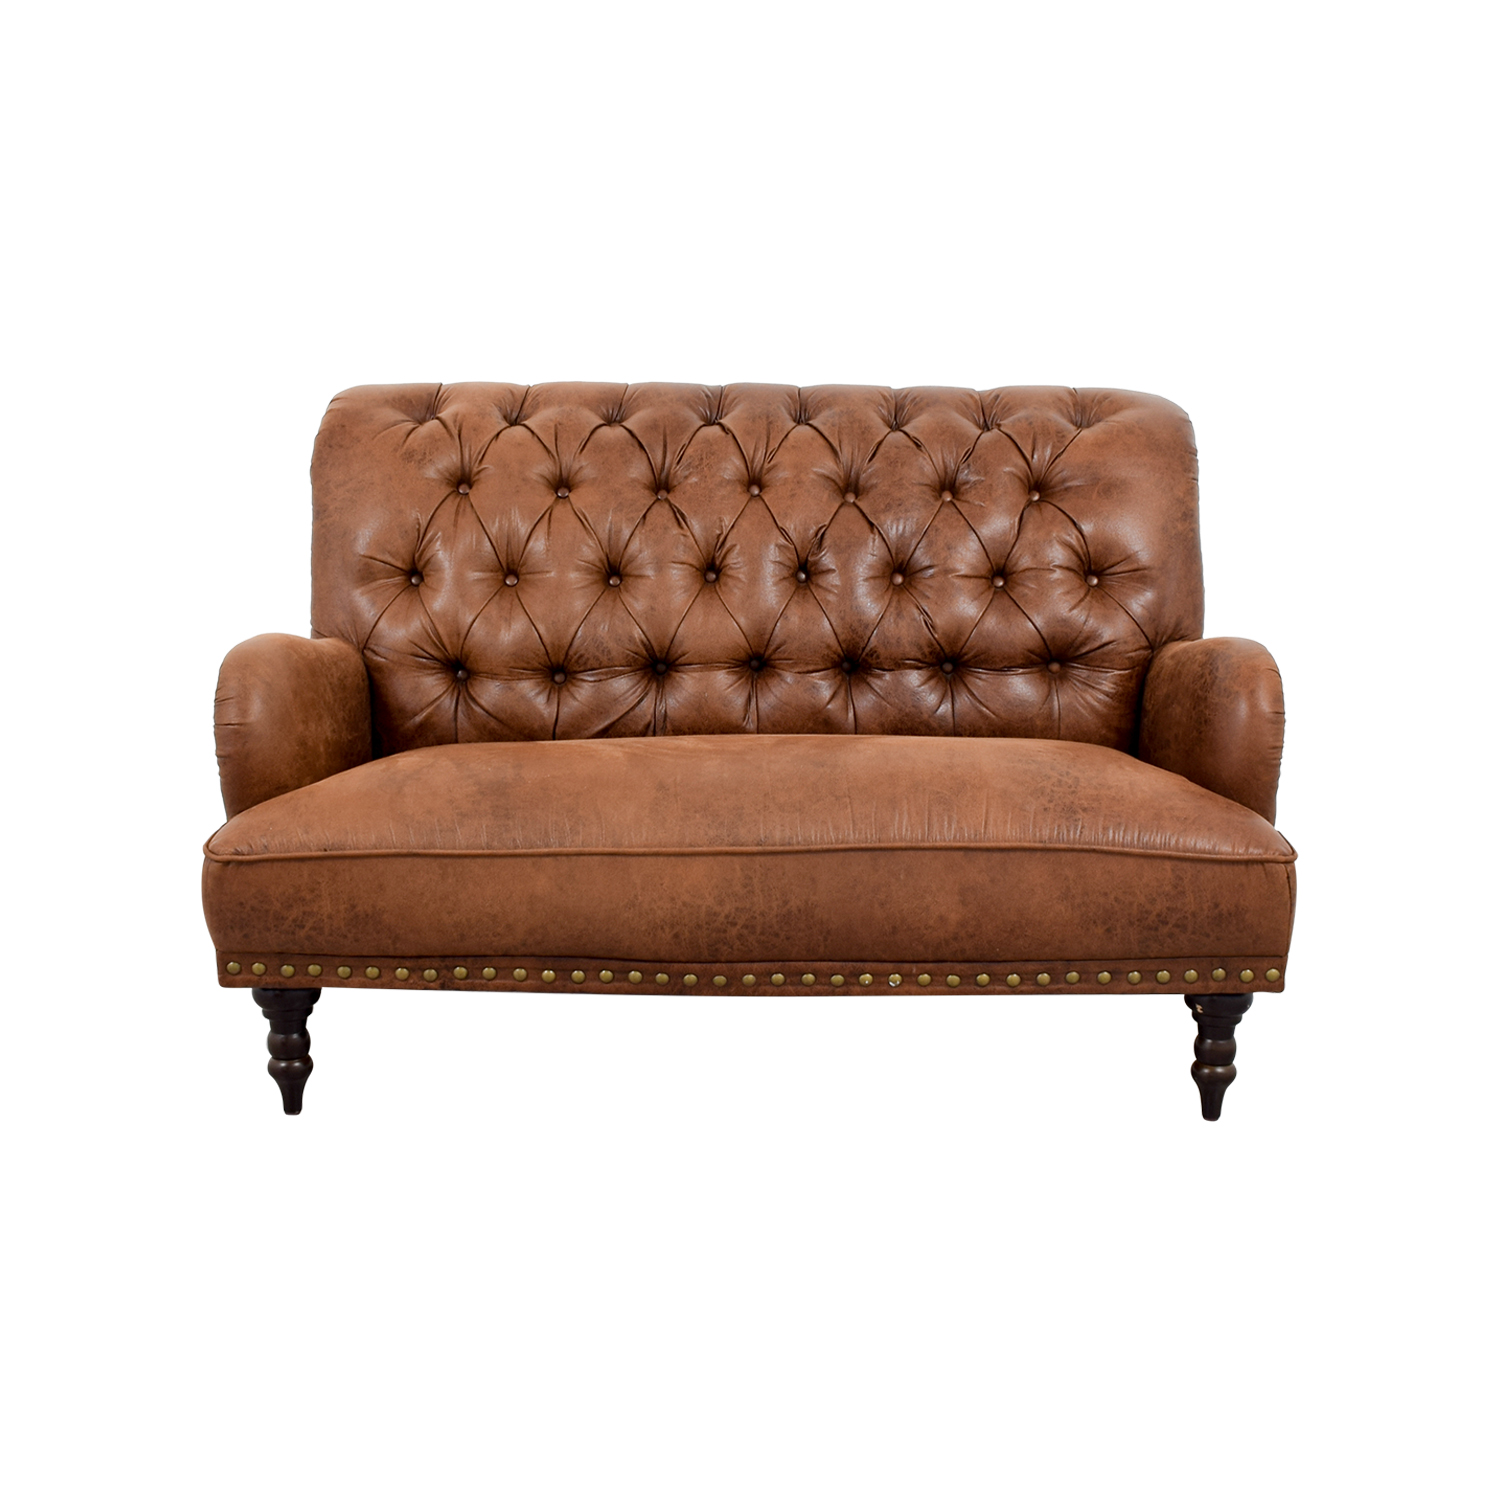 tufted brown leather sofa change upholstery singapore fancy